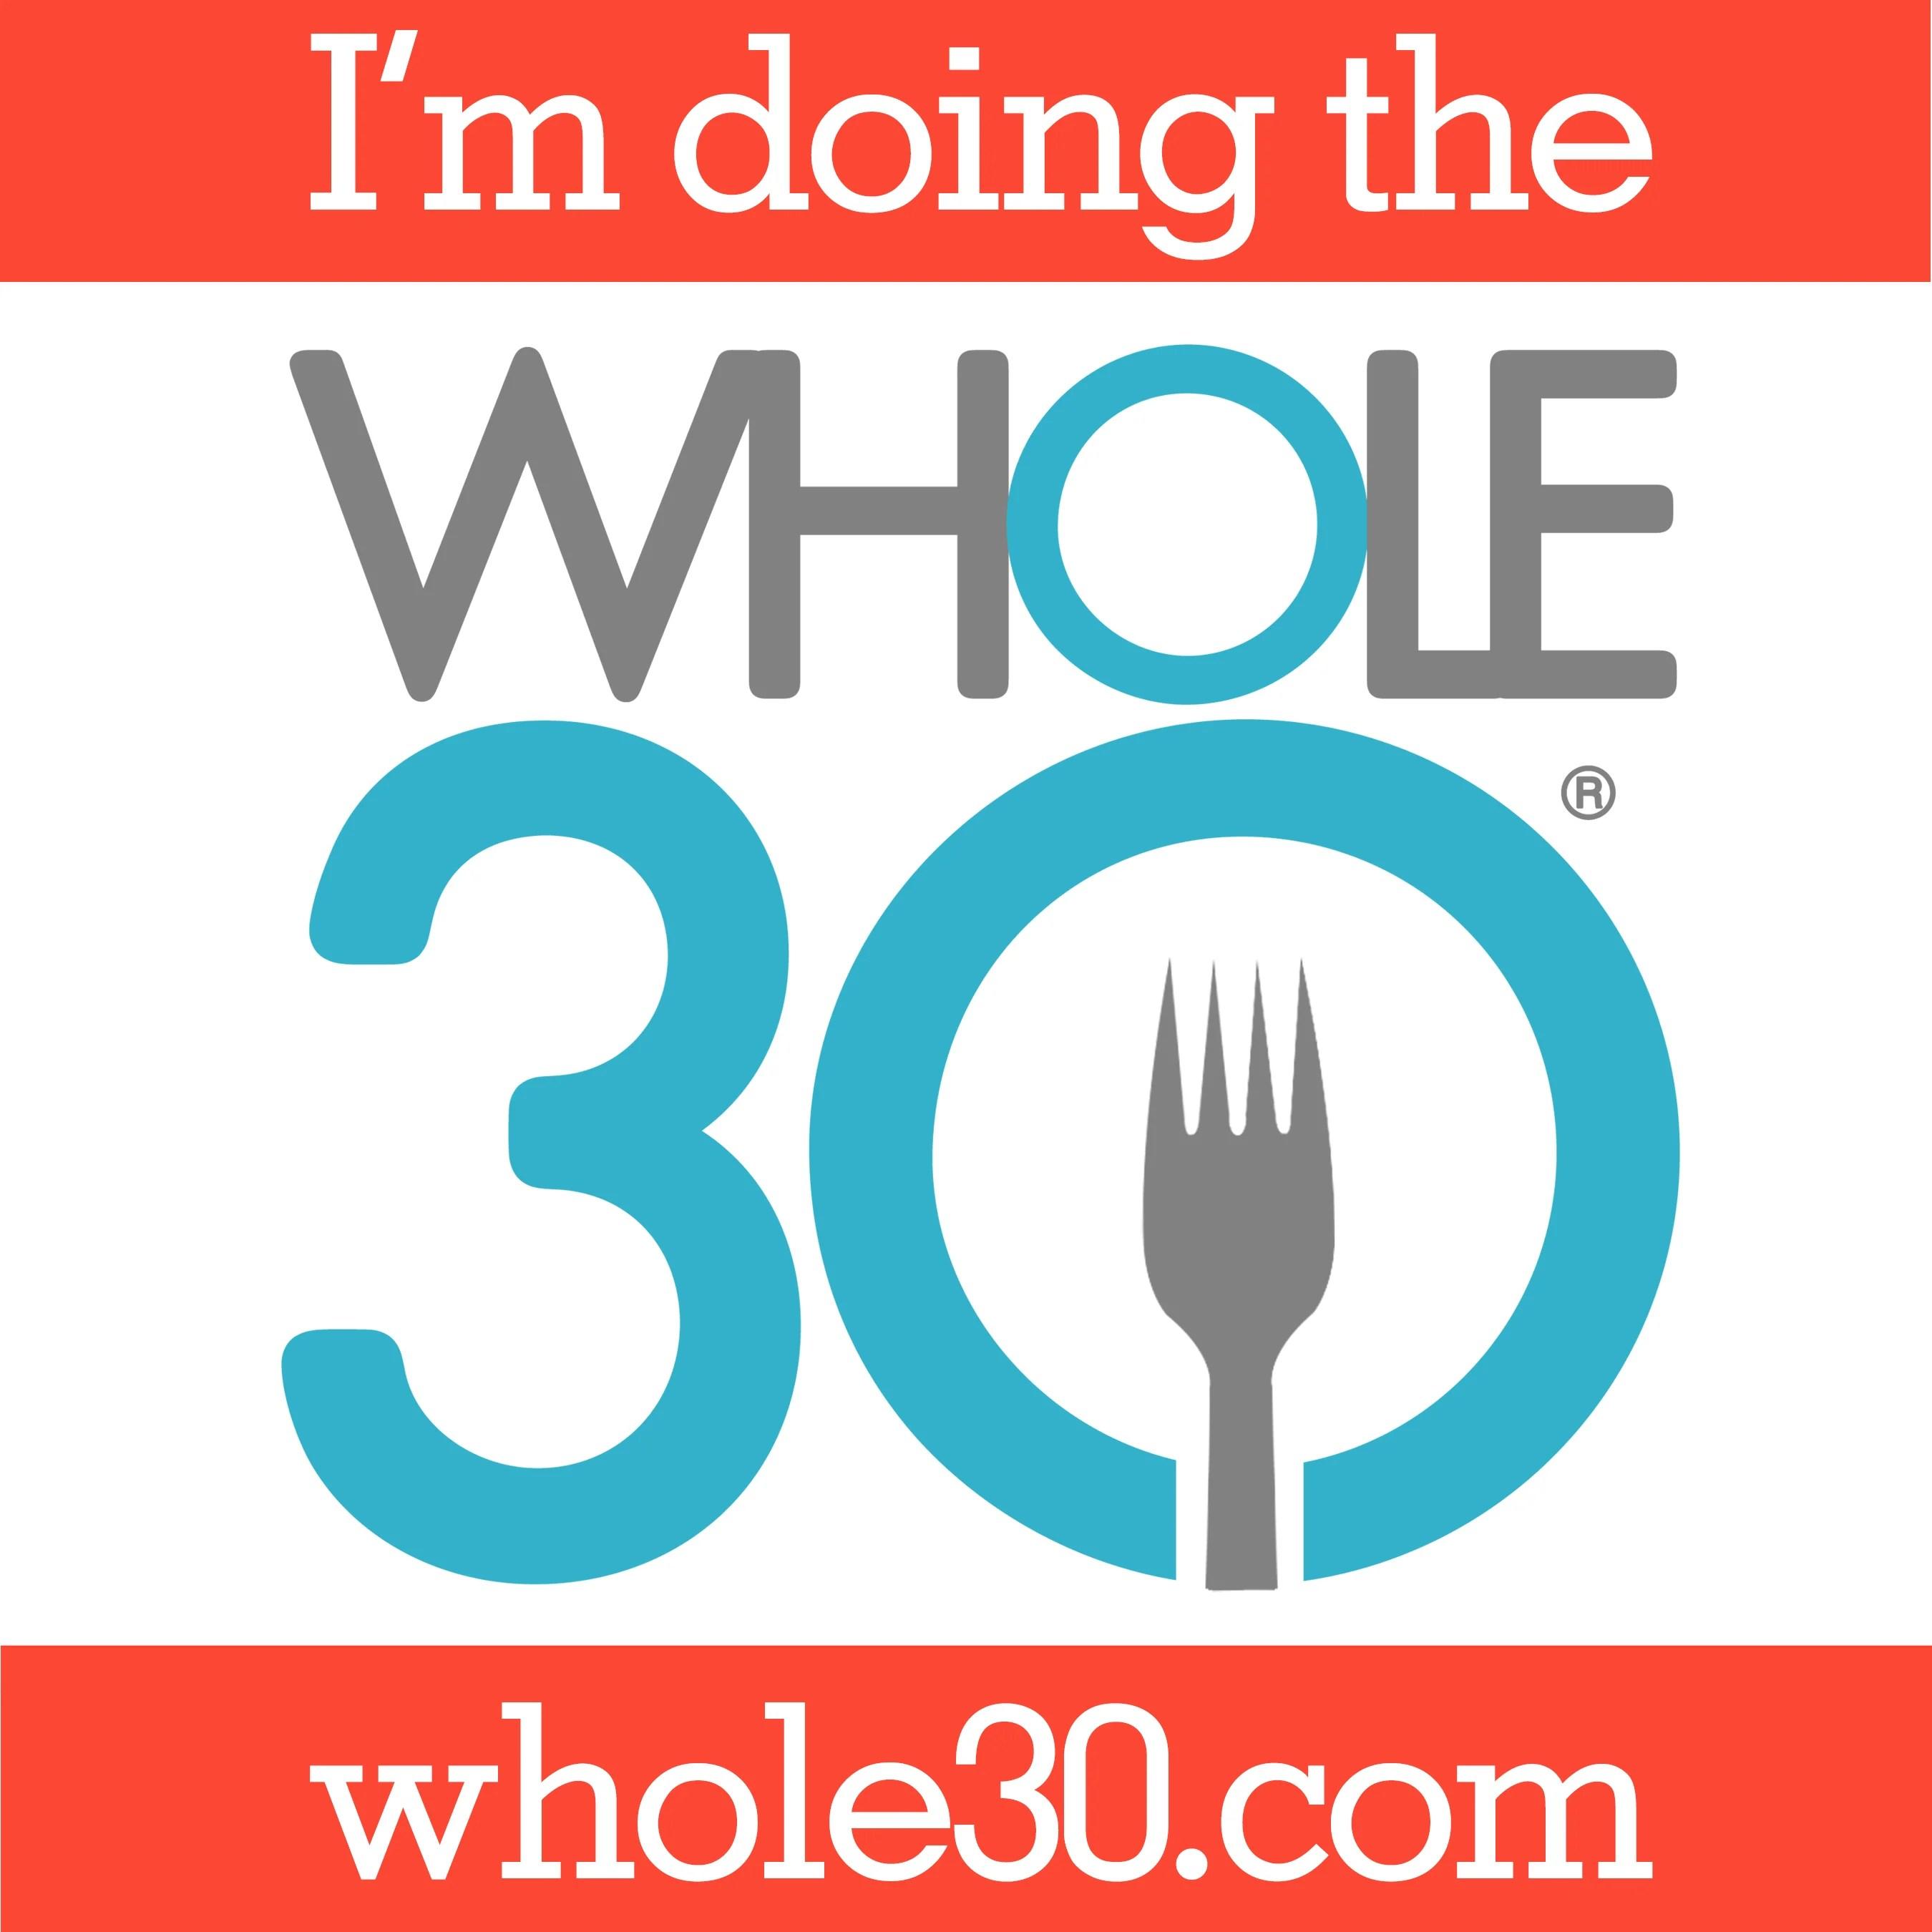 https://i2.wp.com/whole30.com/wp-content/uploads/2013/12/doing-the-w30-IG.jpg